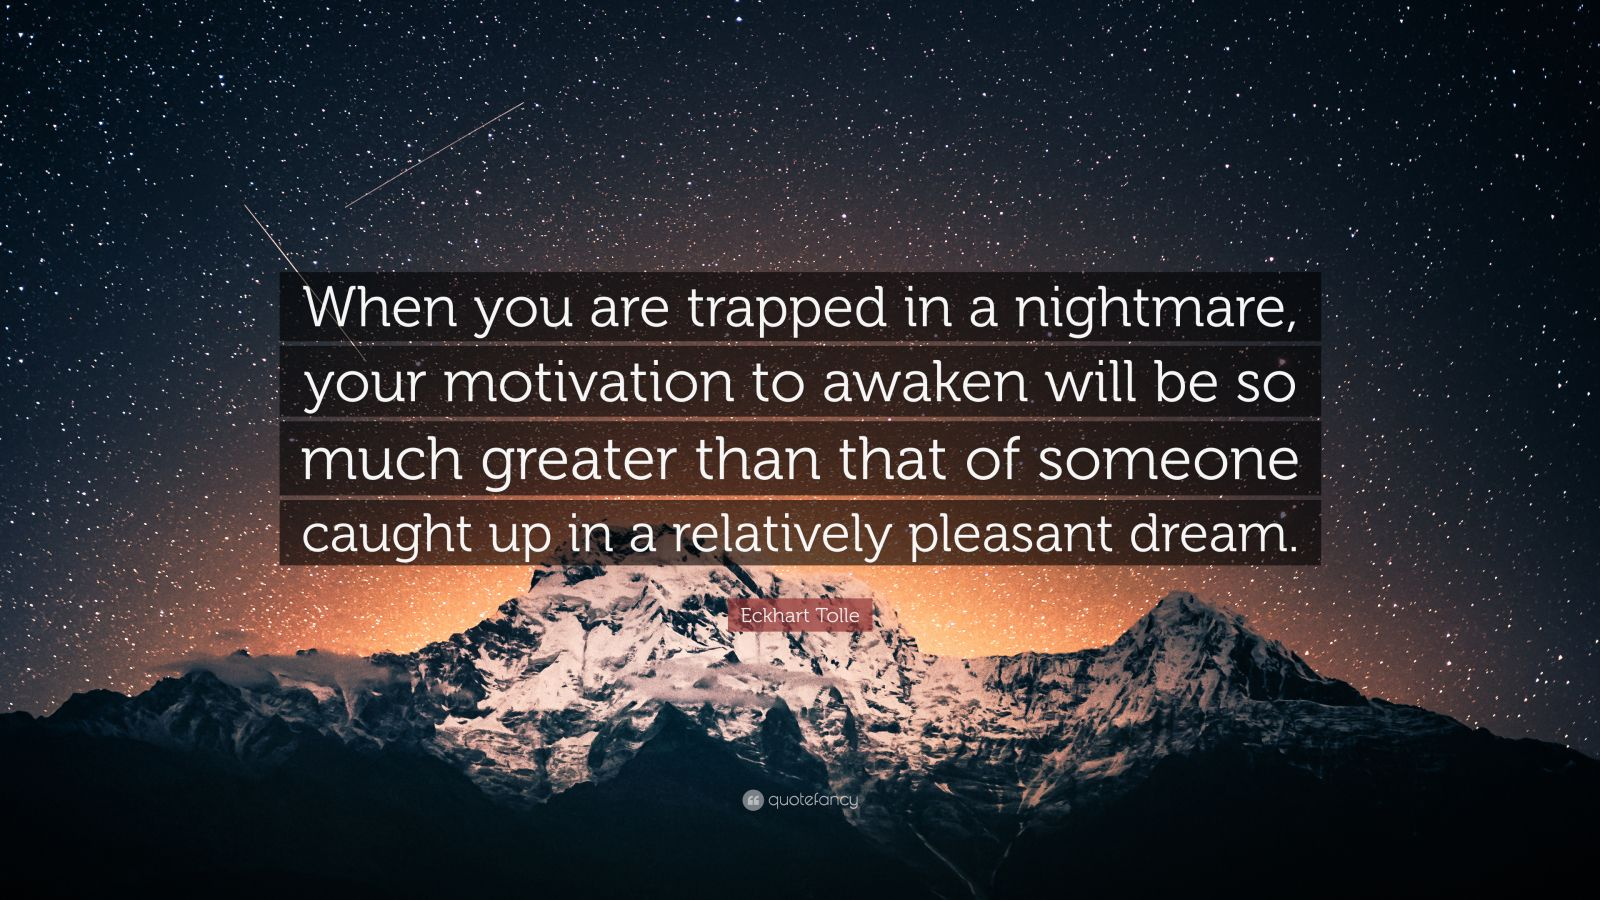 """Eckhart Tolle Quote: """"When you are trapped in a nightmare, your motivation to awaken will be so much greater than that of someone caught up in a relatively pleasant dream."""""""